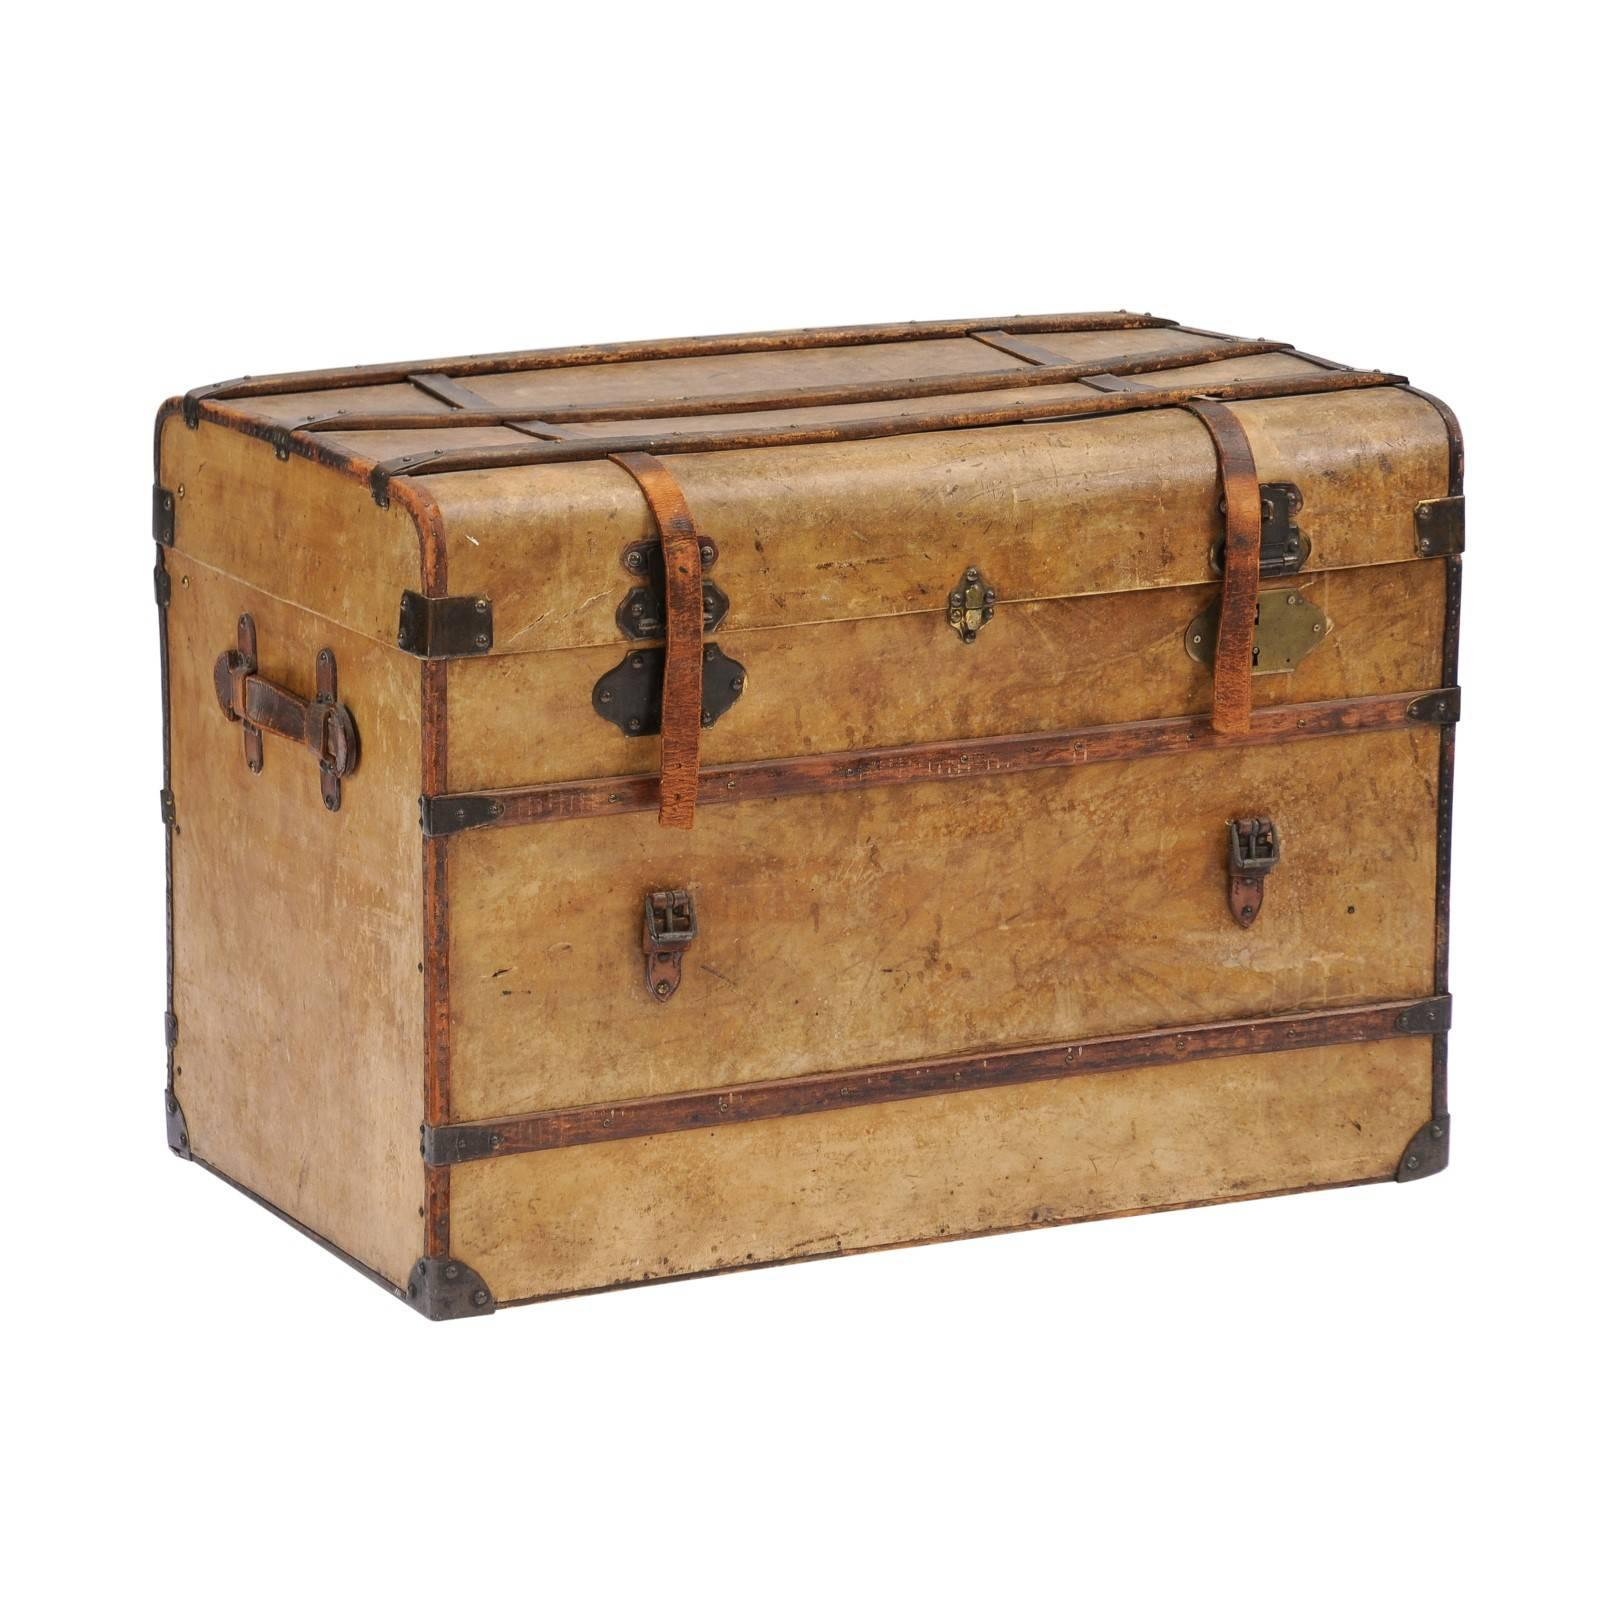 Tea Chest Coffee Table Part - 23: 1920s, French Travel Trunk Coffee Table With Leather Straps And Compartments